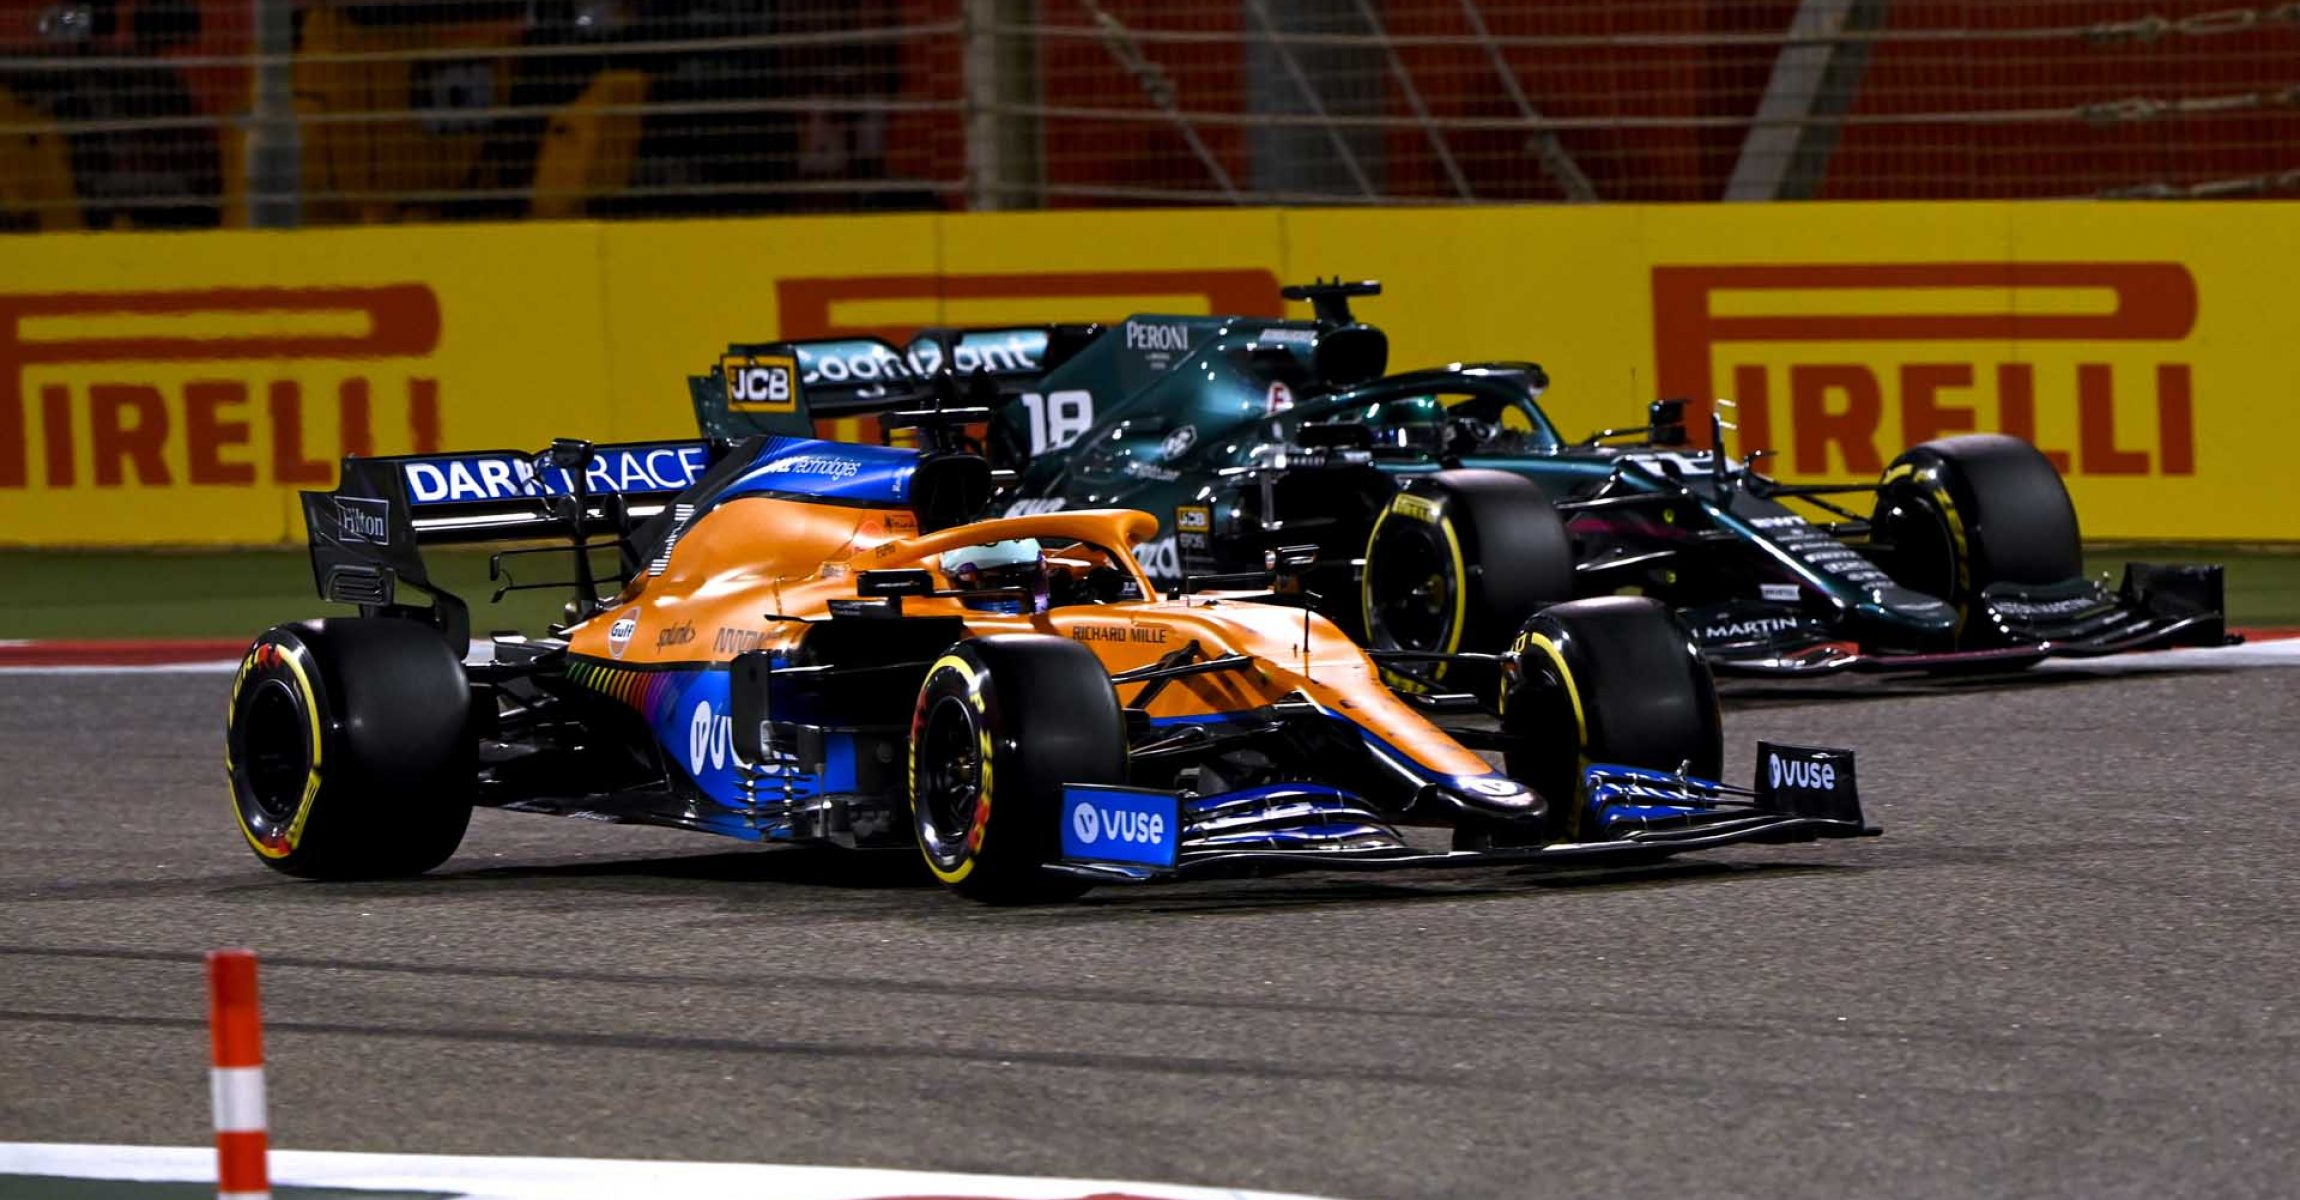 BAHRAIN INTERNATIONAL CIRCUIT, BAHRAIN - MARCH 28: Daniel Ricciardo, McLaren MCL35M, battles with Lance Stroll, Aston Martin AMR21 during the Bahrain GP at Bahrain International Circuit on Sunday March 28, 2021 in Sakhir, Bahrain. (Photo by Mark Sutton / LAT Images)